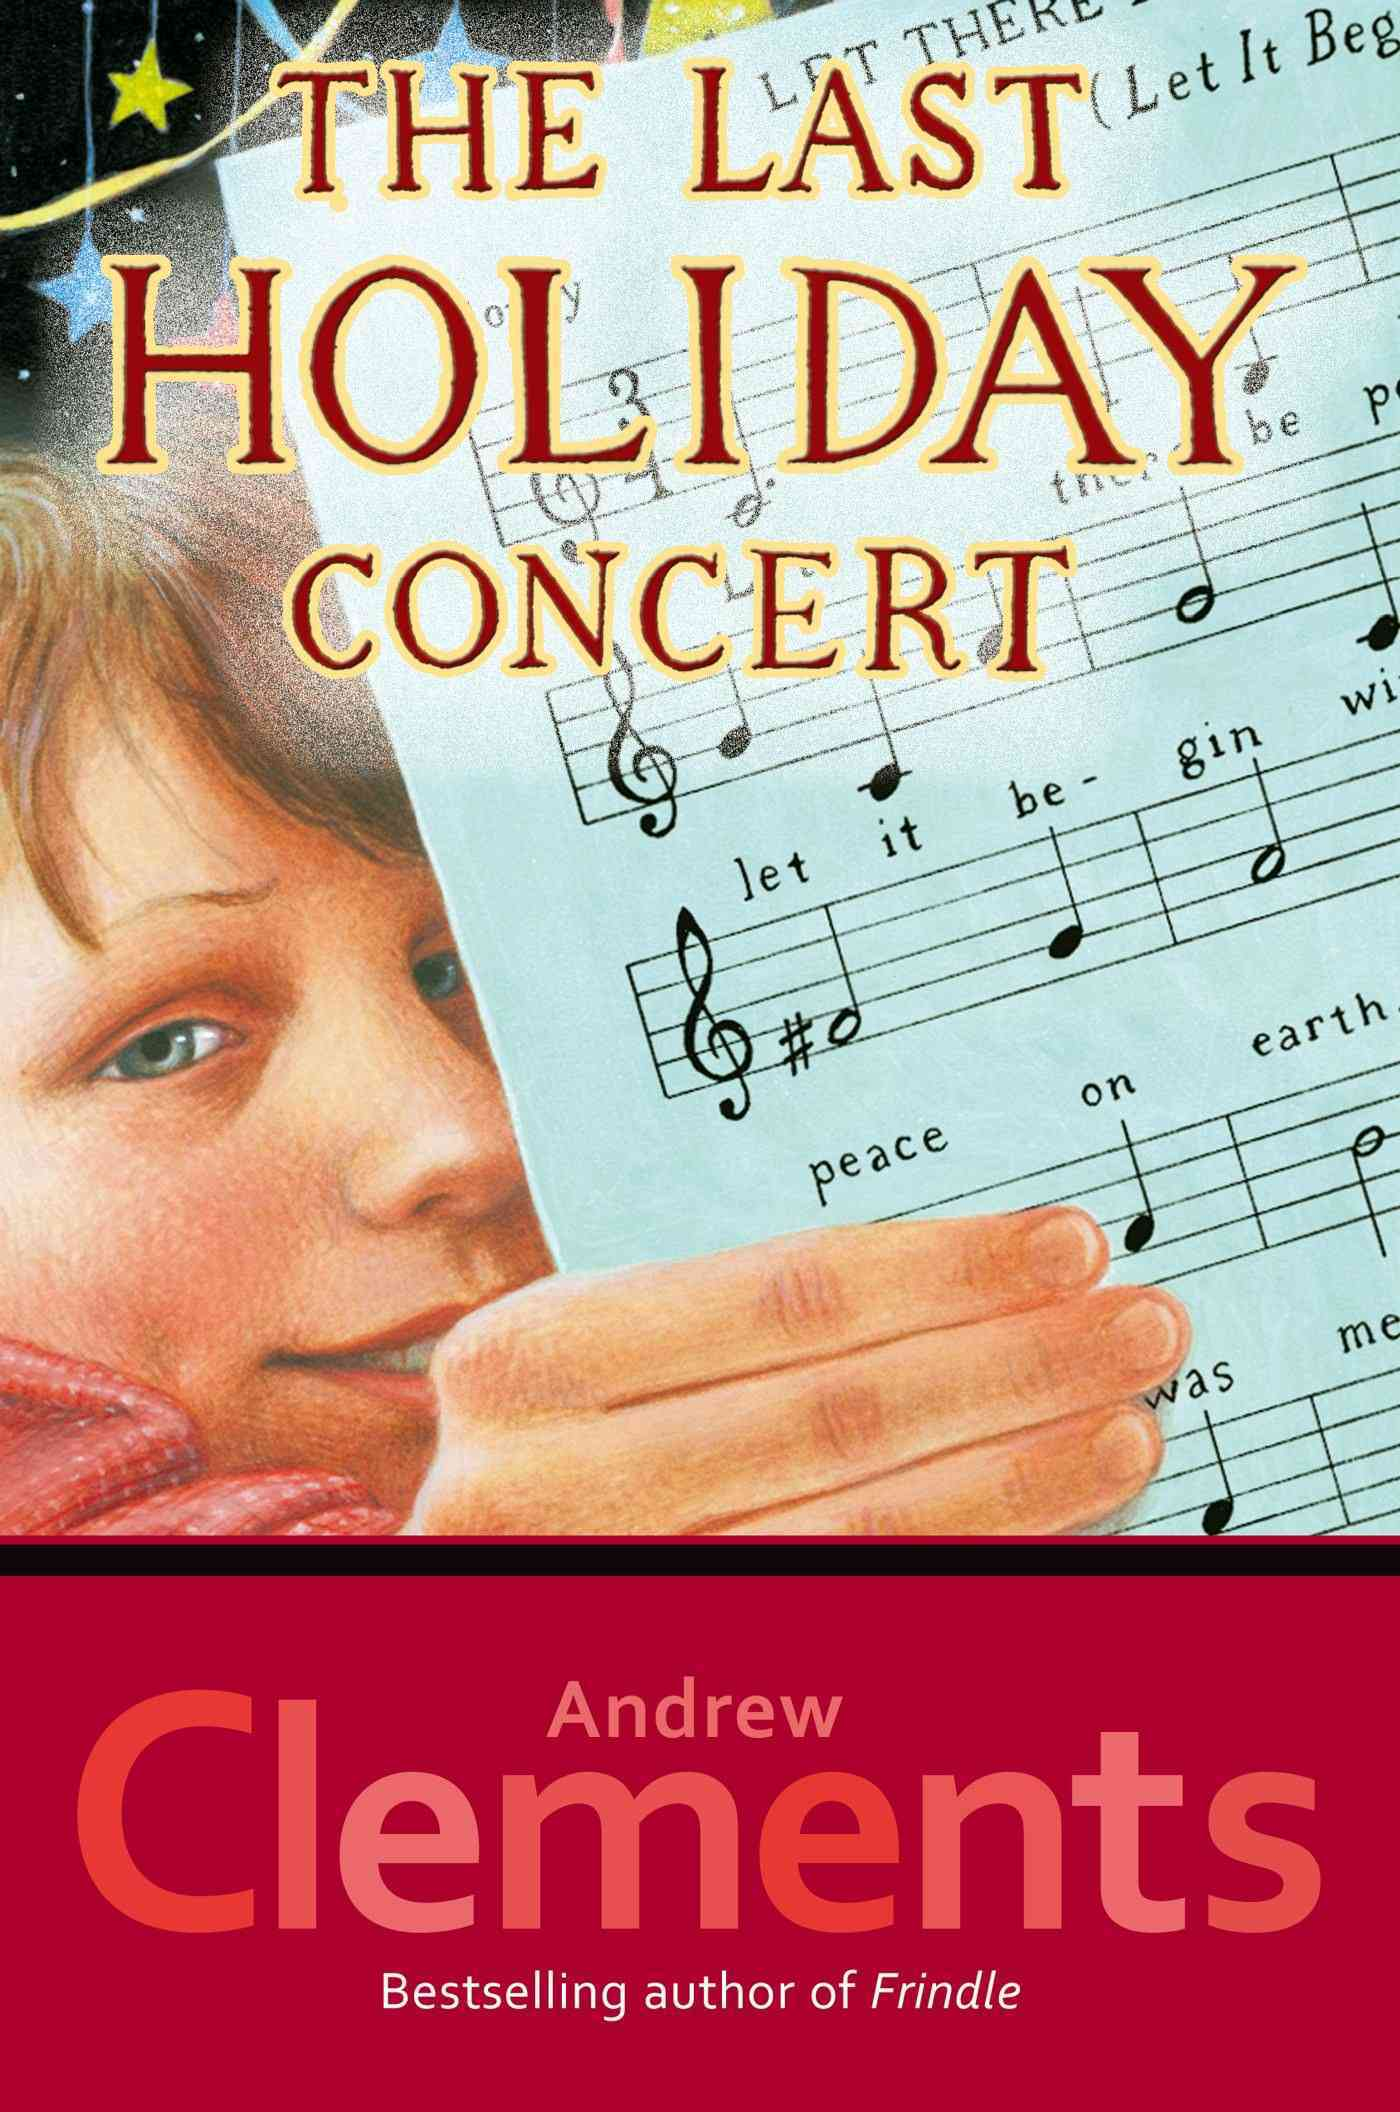 The Last Holiday Concert by Clements, Andrew [Hardcover] -